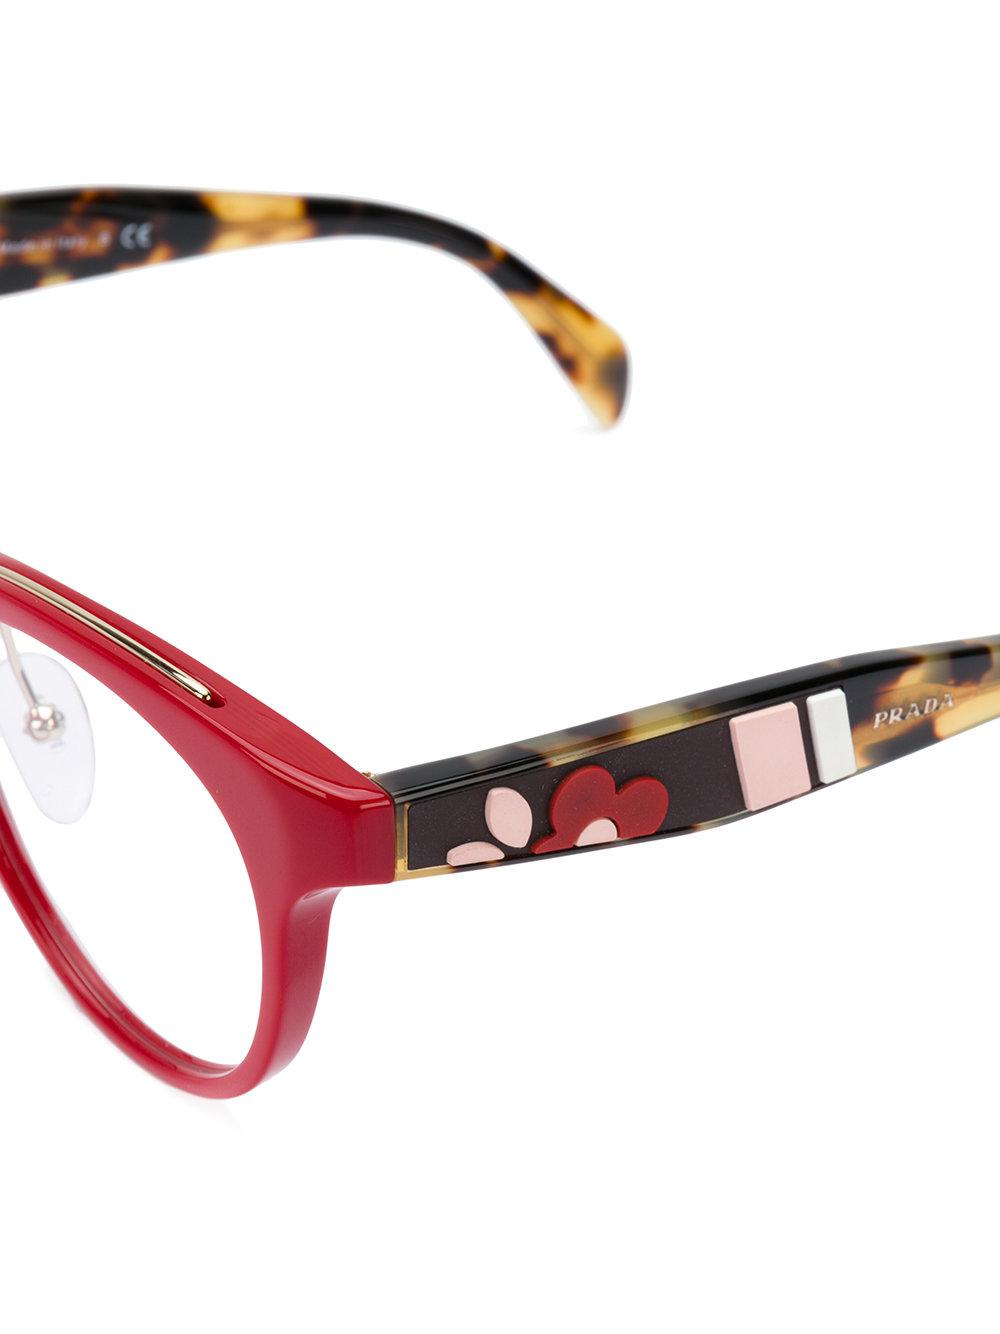 Lyst - Prada Round Frame Glasses in Red